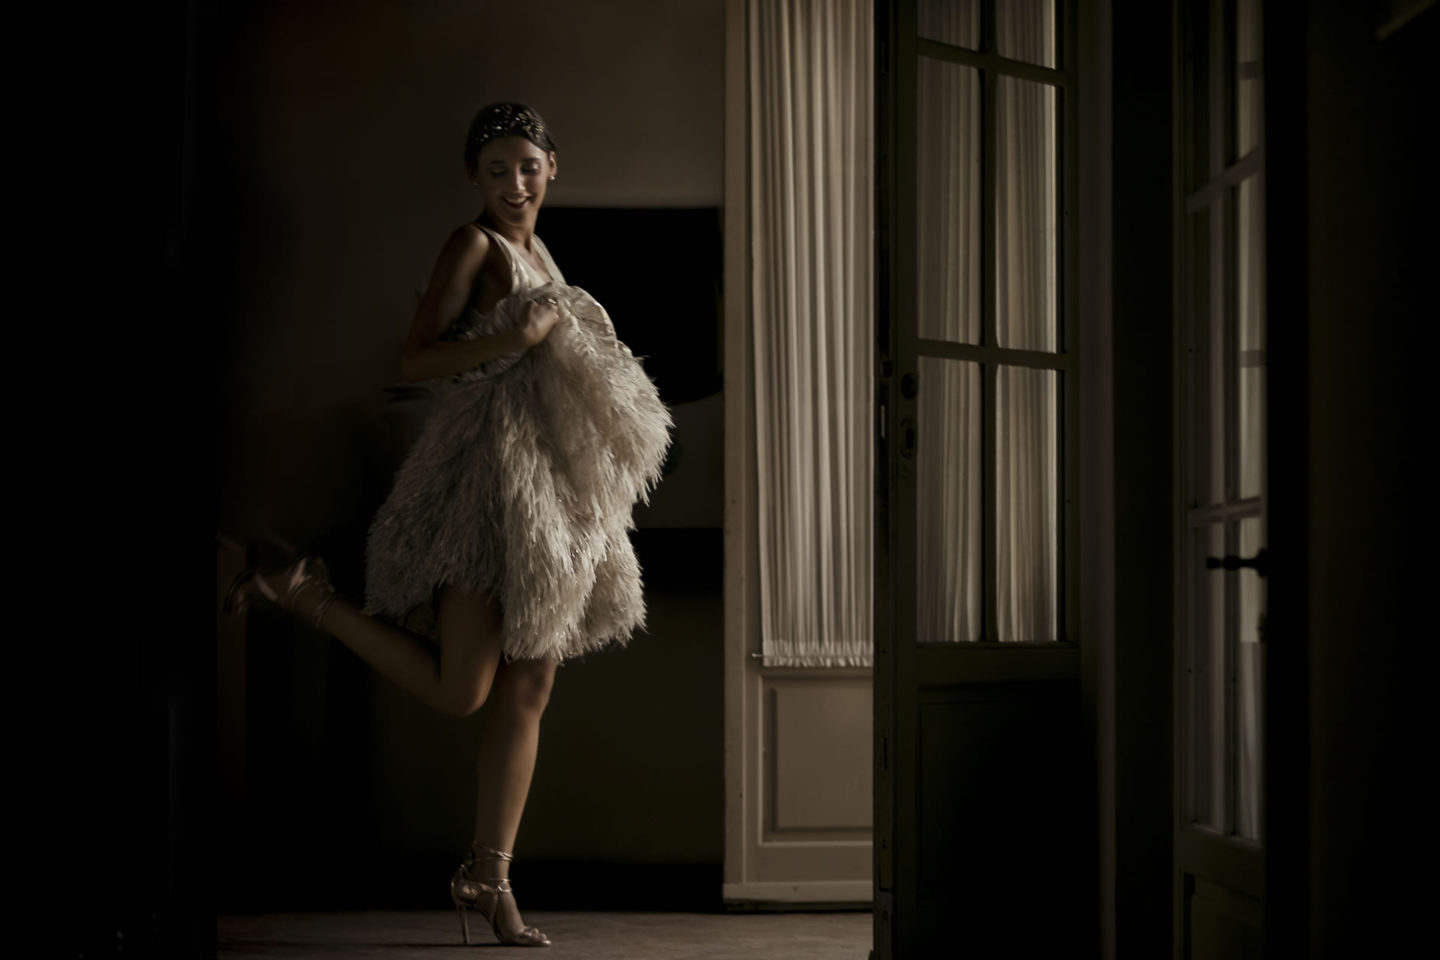 Dancer :: Bride alone :: David Bastianoni wedding photographer